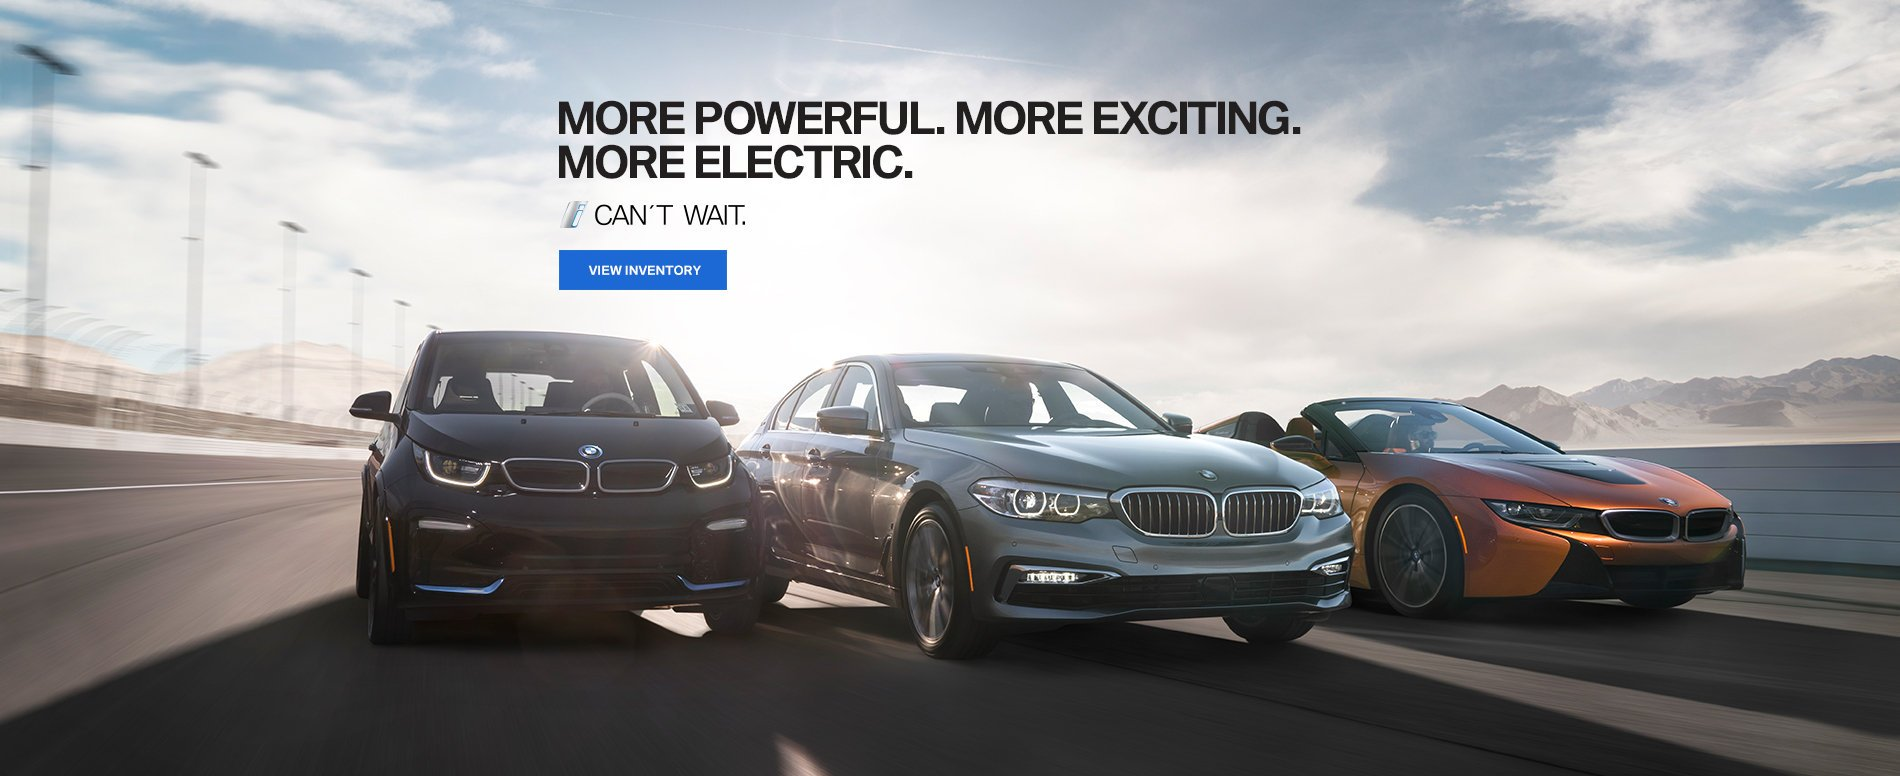 More Powerful. More Exciting. More Electric.